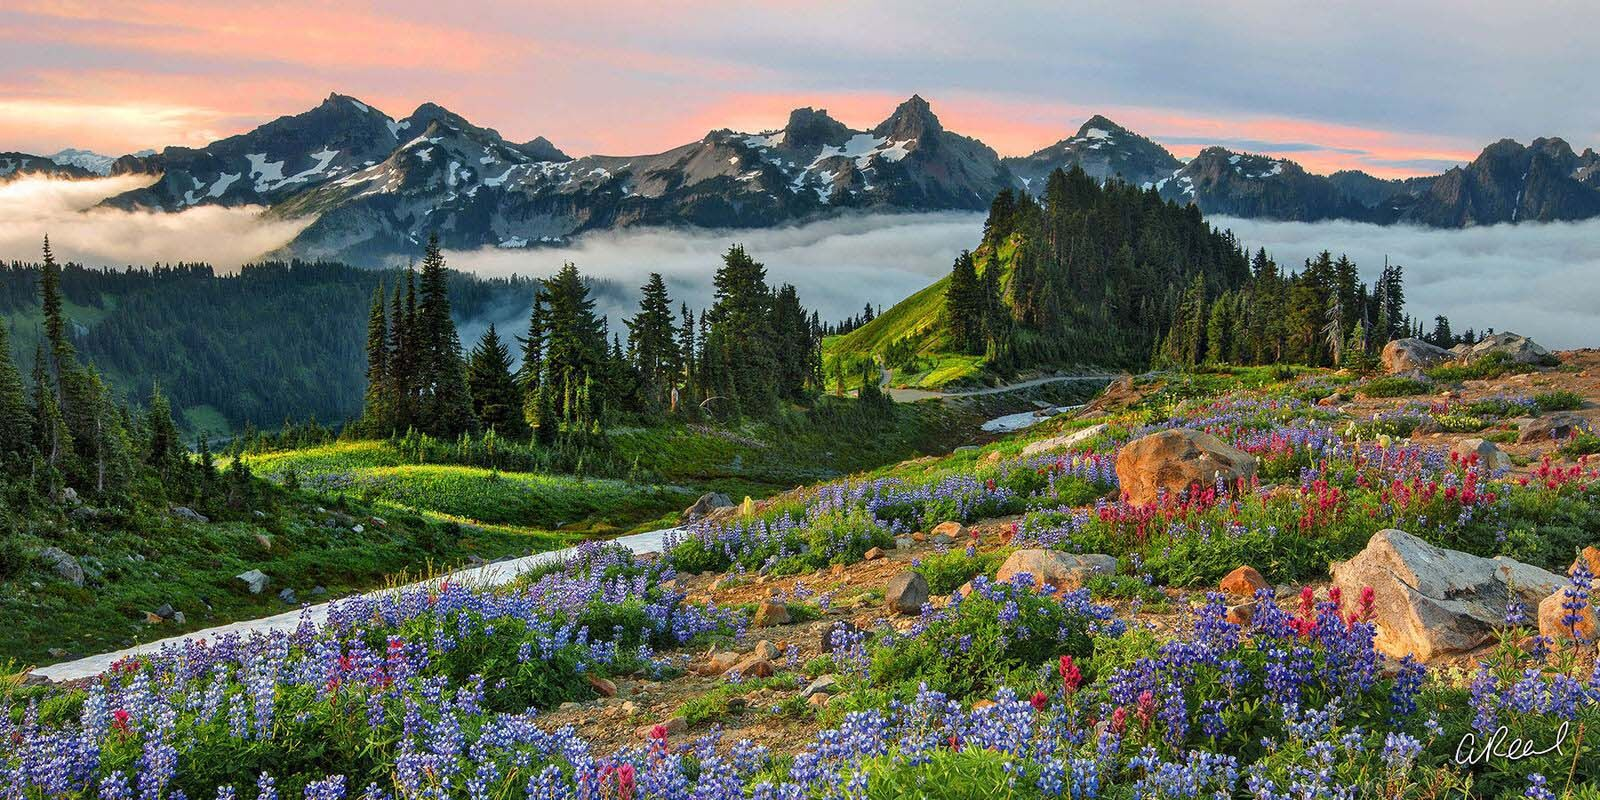 Transform your space with Aaron Reed's luxury fine art photography print, Eternal Beauty, from his Panoramic Wall Art collection...